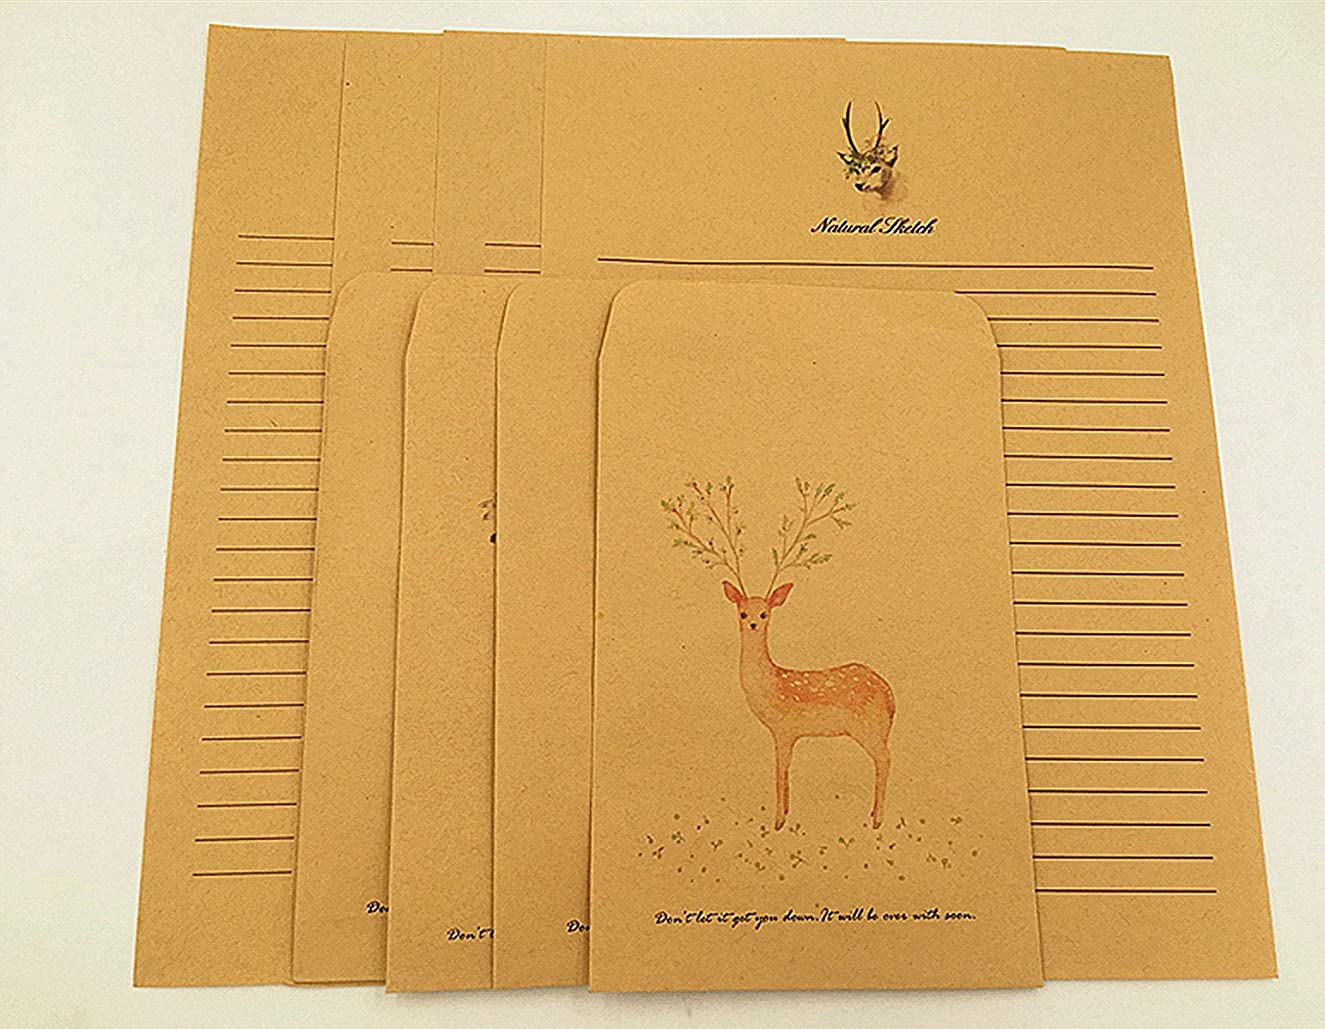 Babycola's Mum 40 Writing Stationary Paper with 8 Envelopes, Vintage Retro Cute Design,Letter Writing Paper Sets